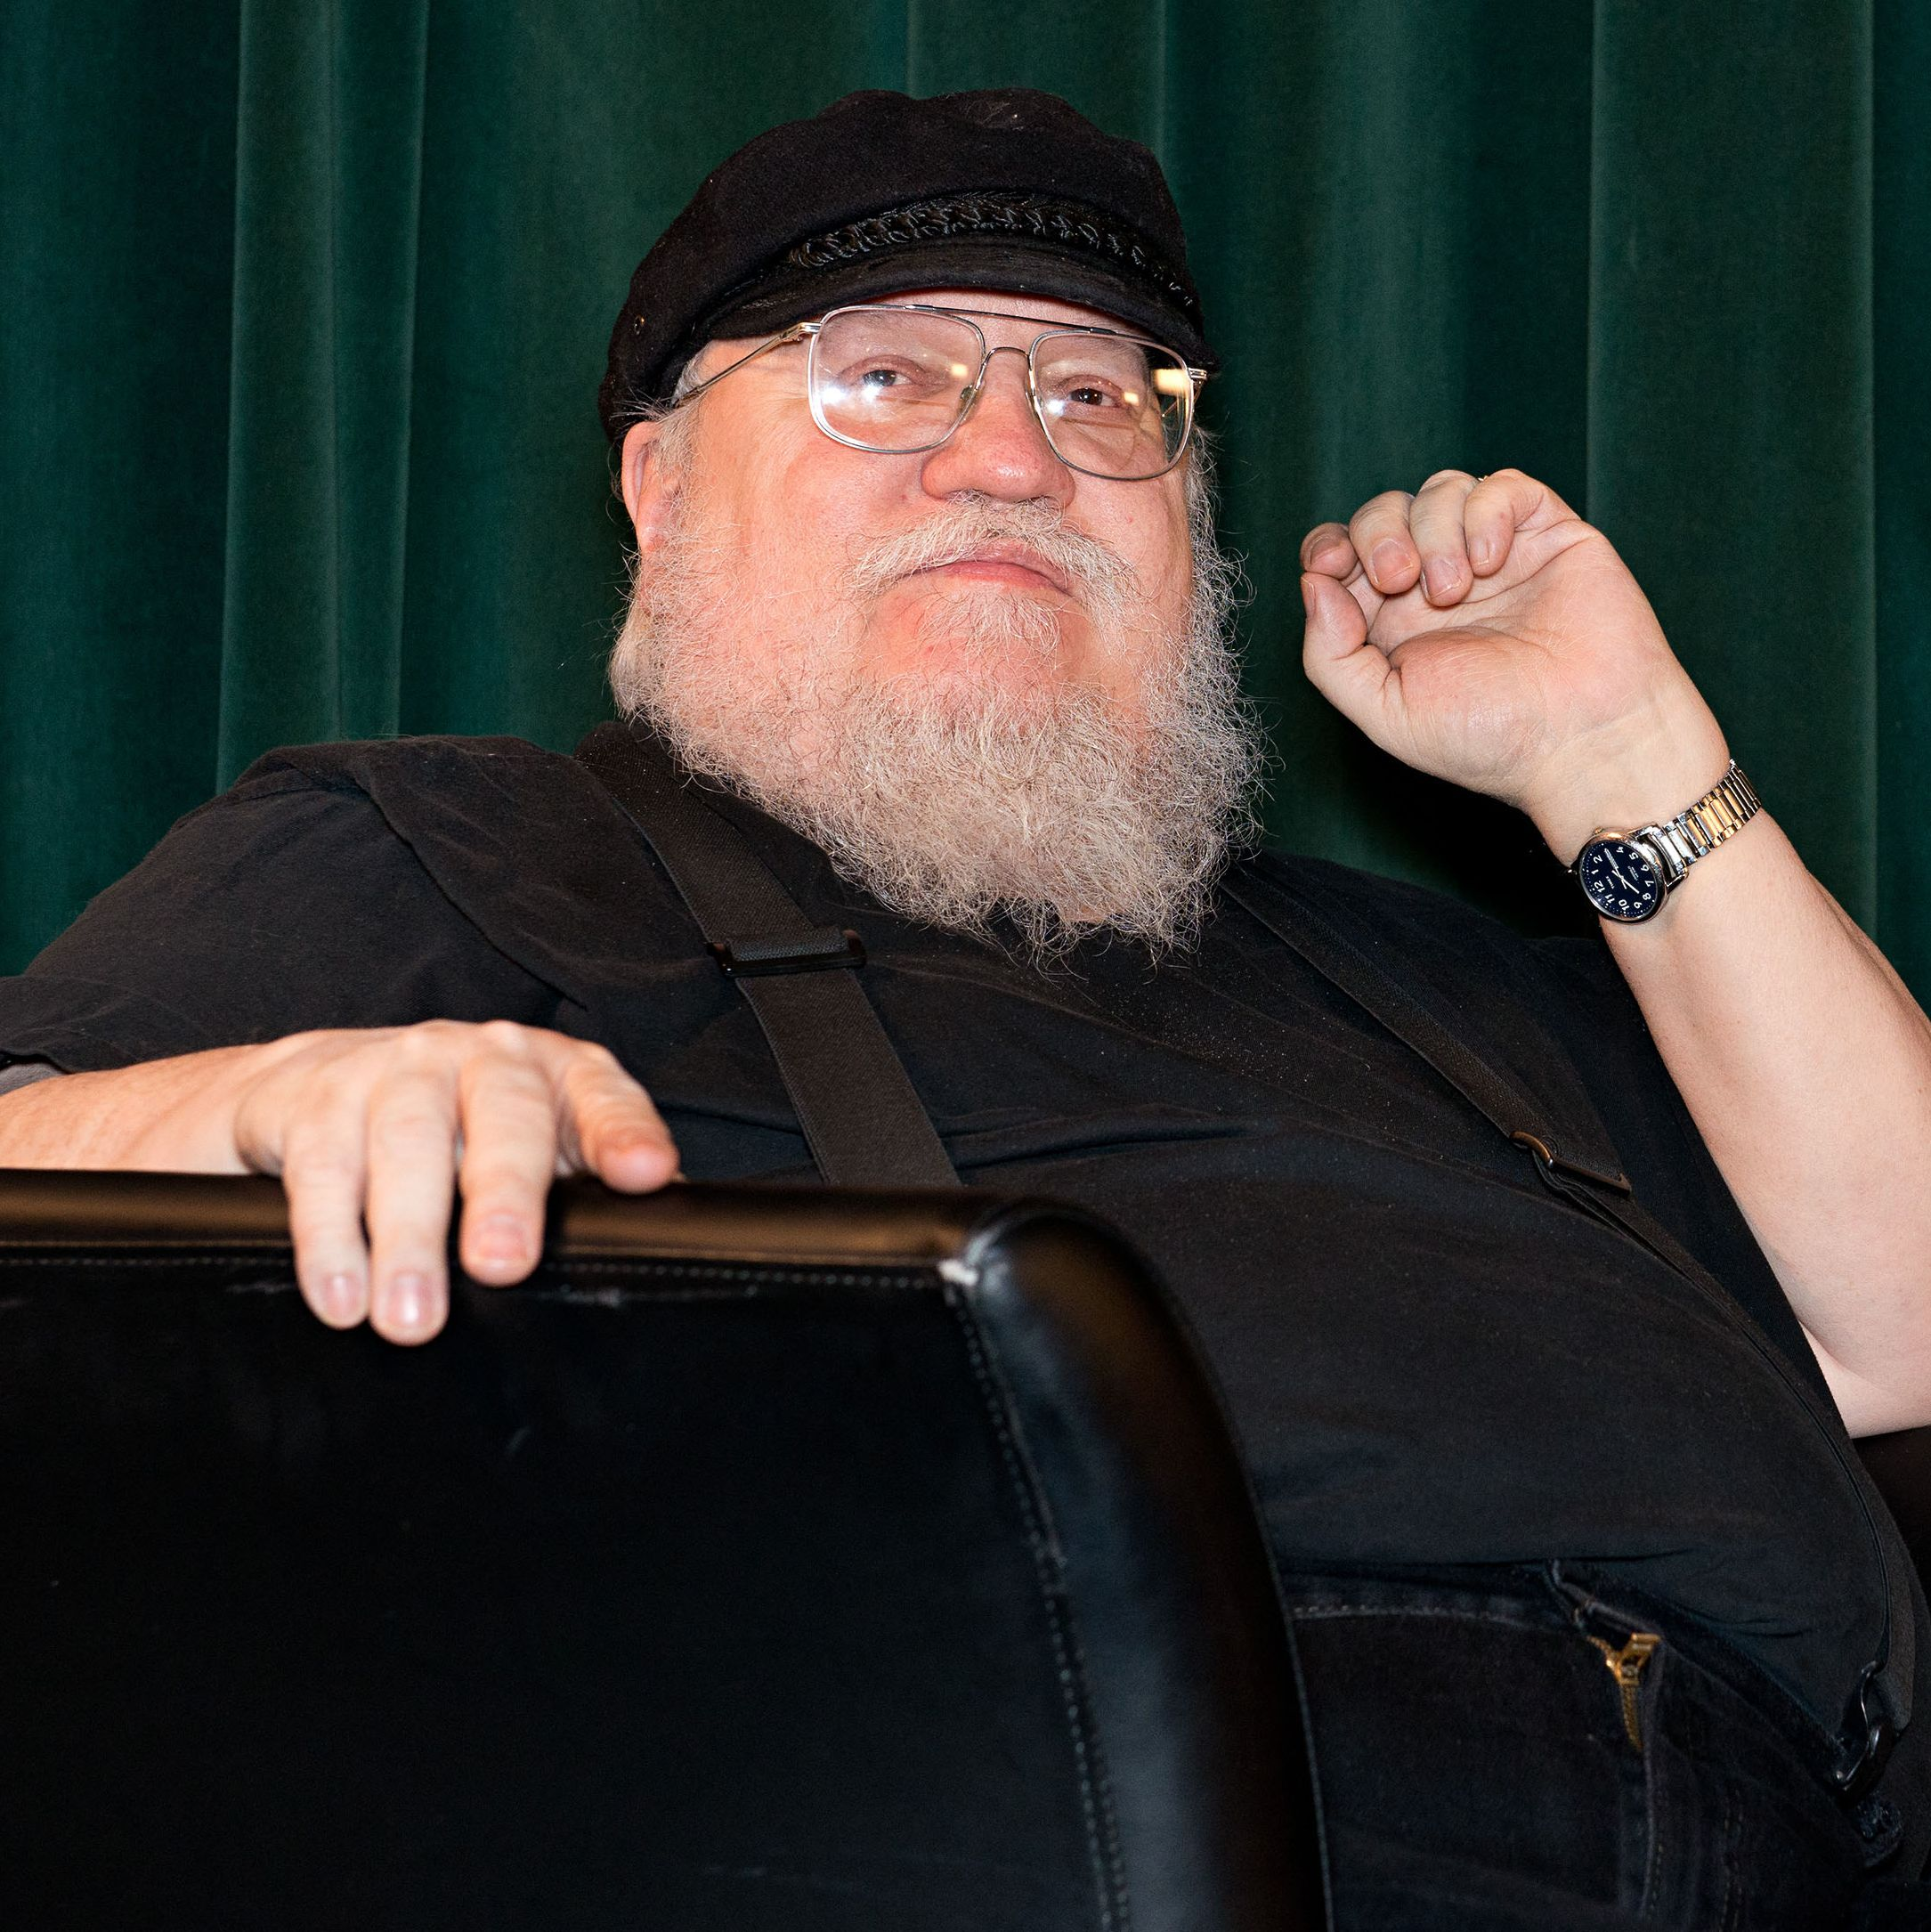 Game of Thrones' George RR Martin hints at making new game with Dark Souls creators